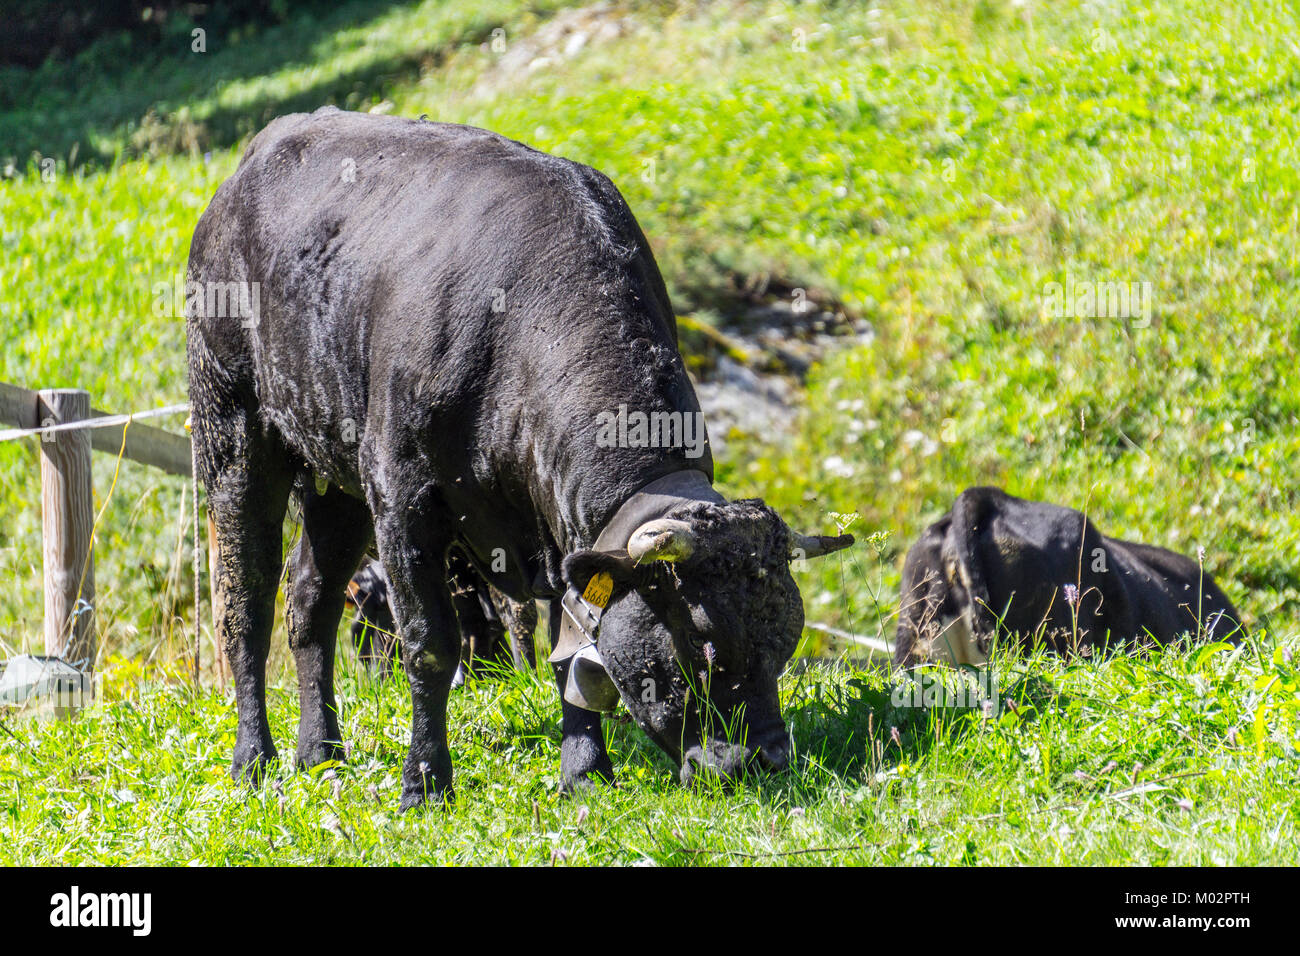 Italy,Aosta Valley,Valnontey,cow - Stock Image